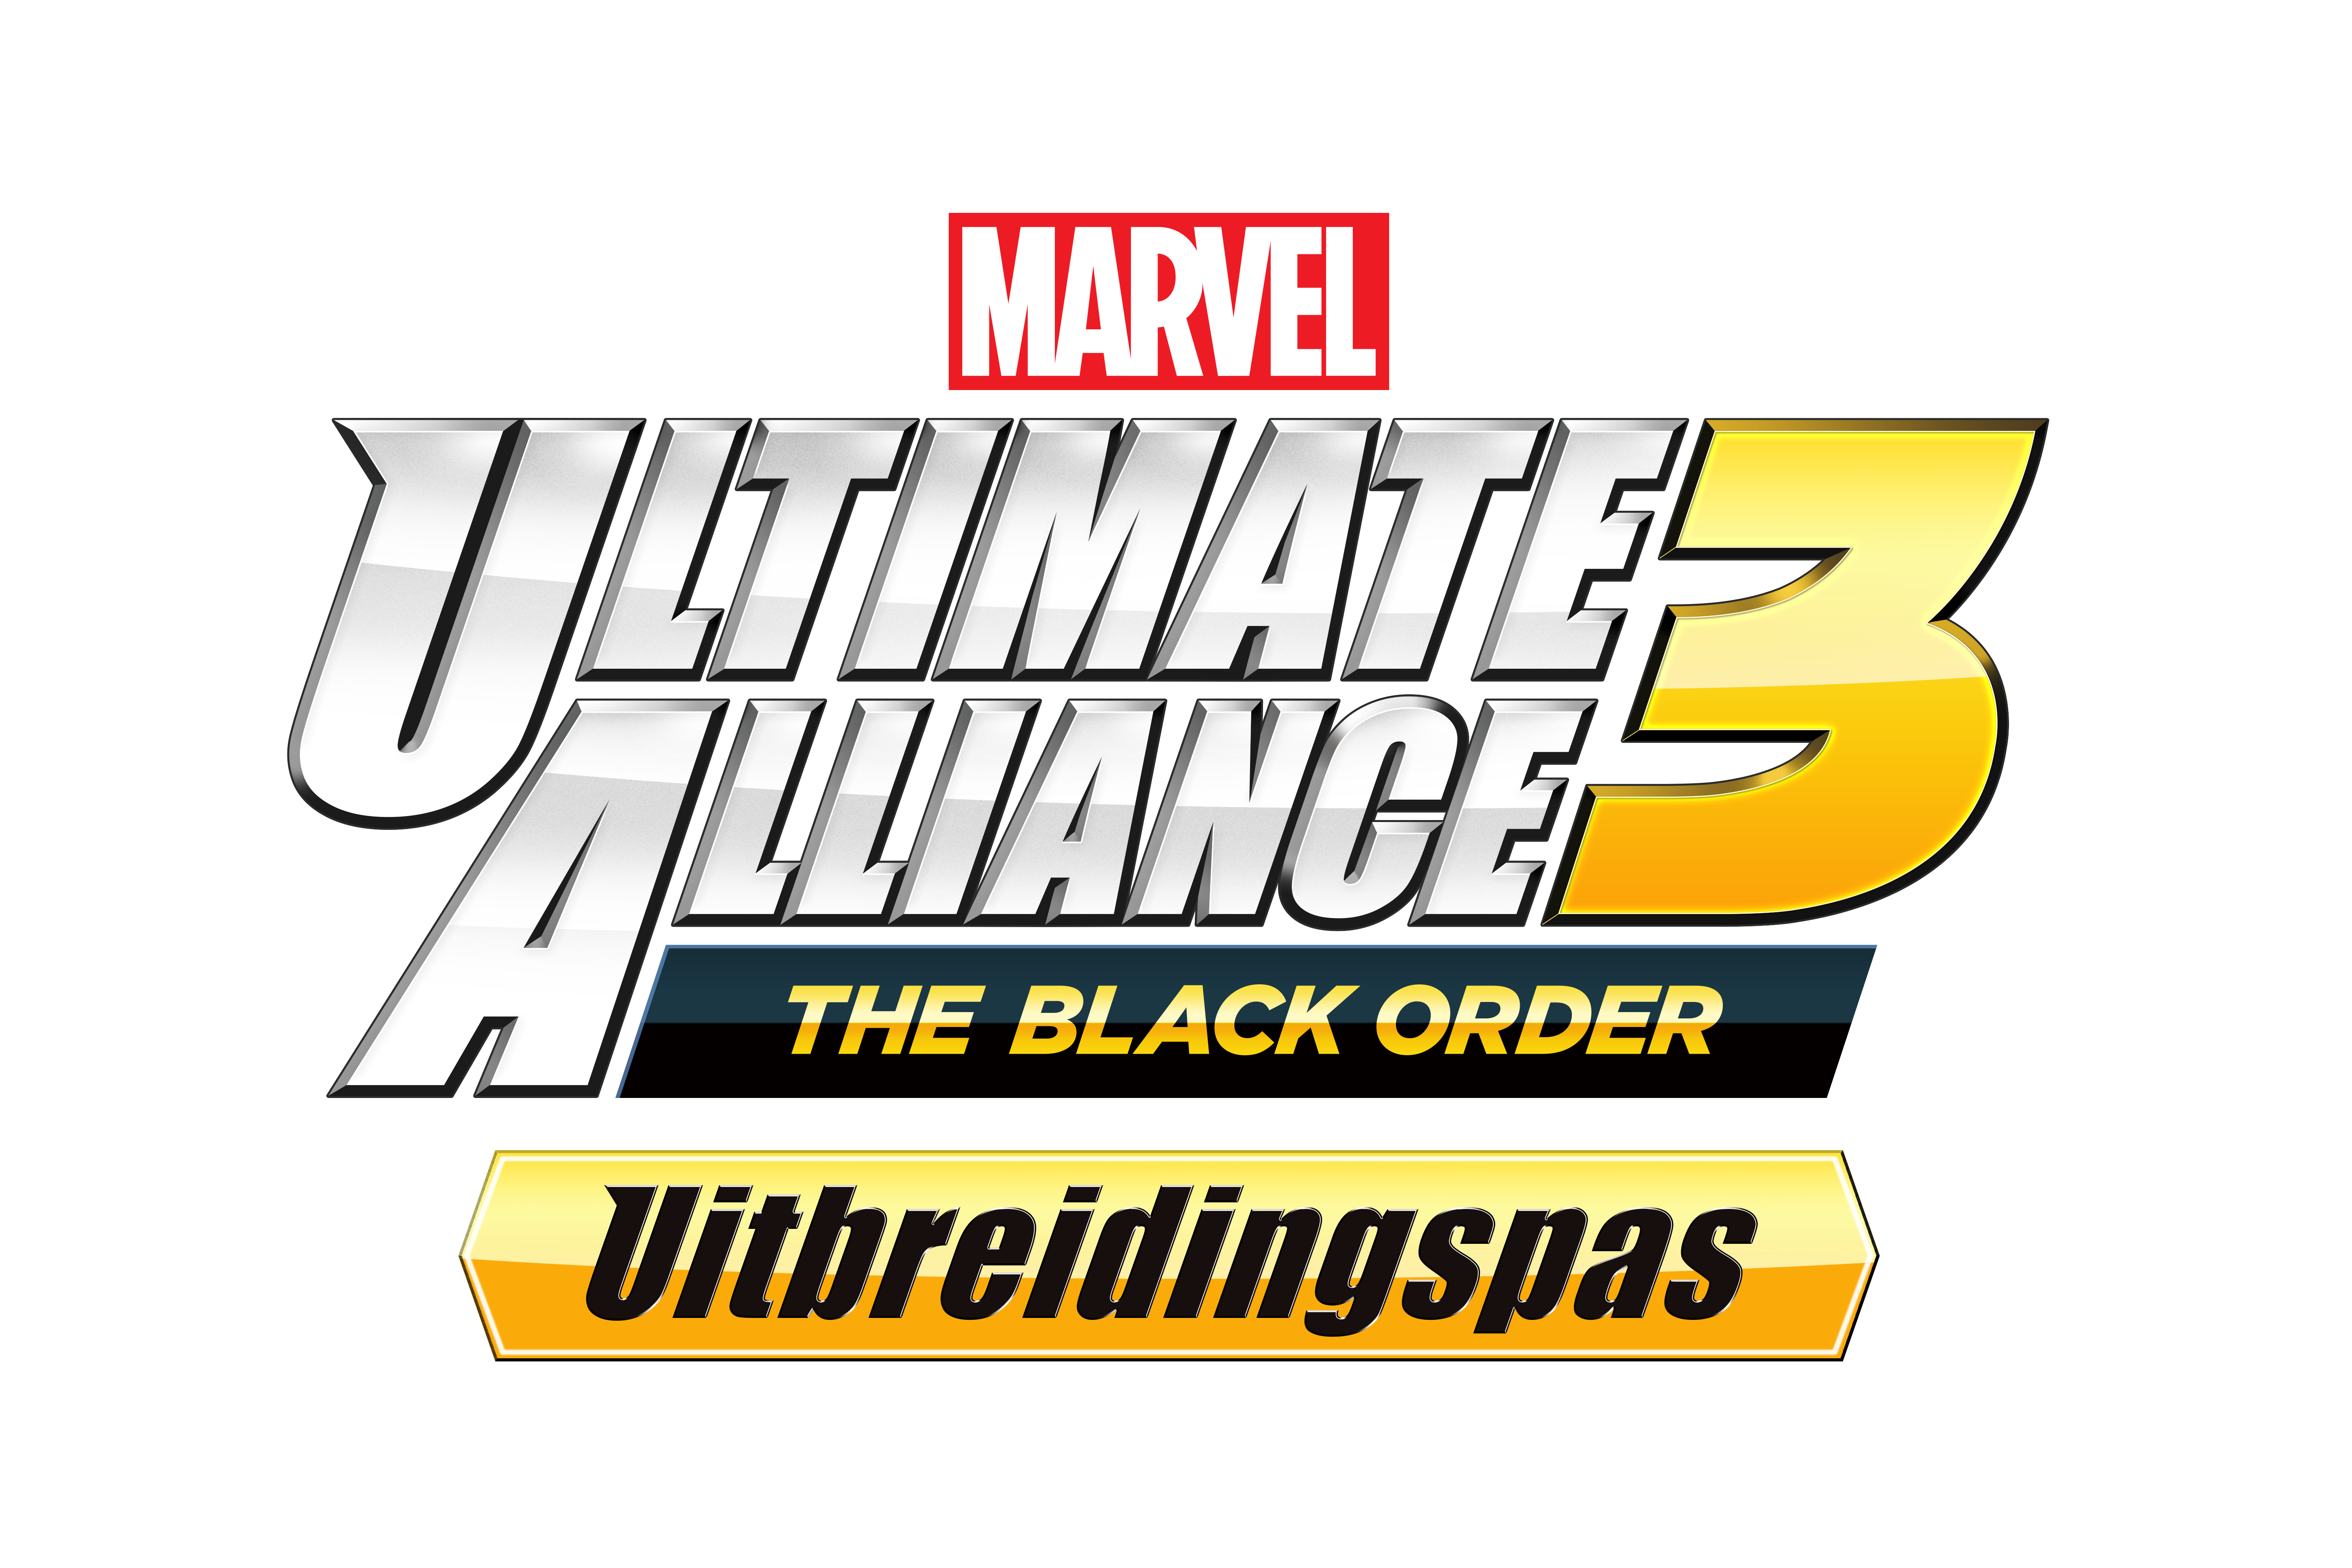 CI_NSwitch_MarvelUltimateAlliance3_DLC_NL.png